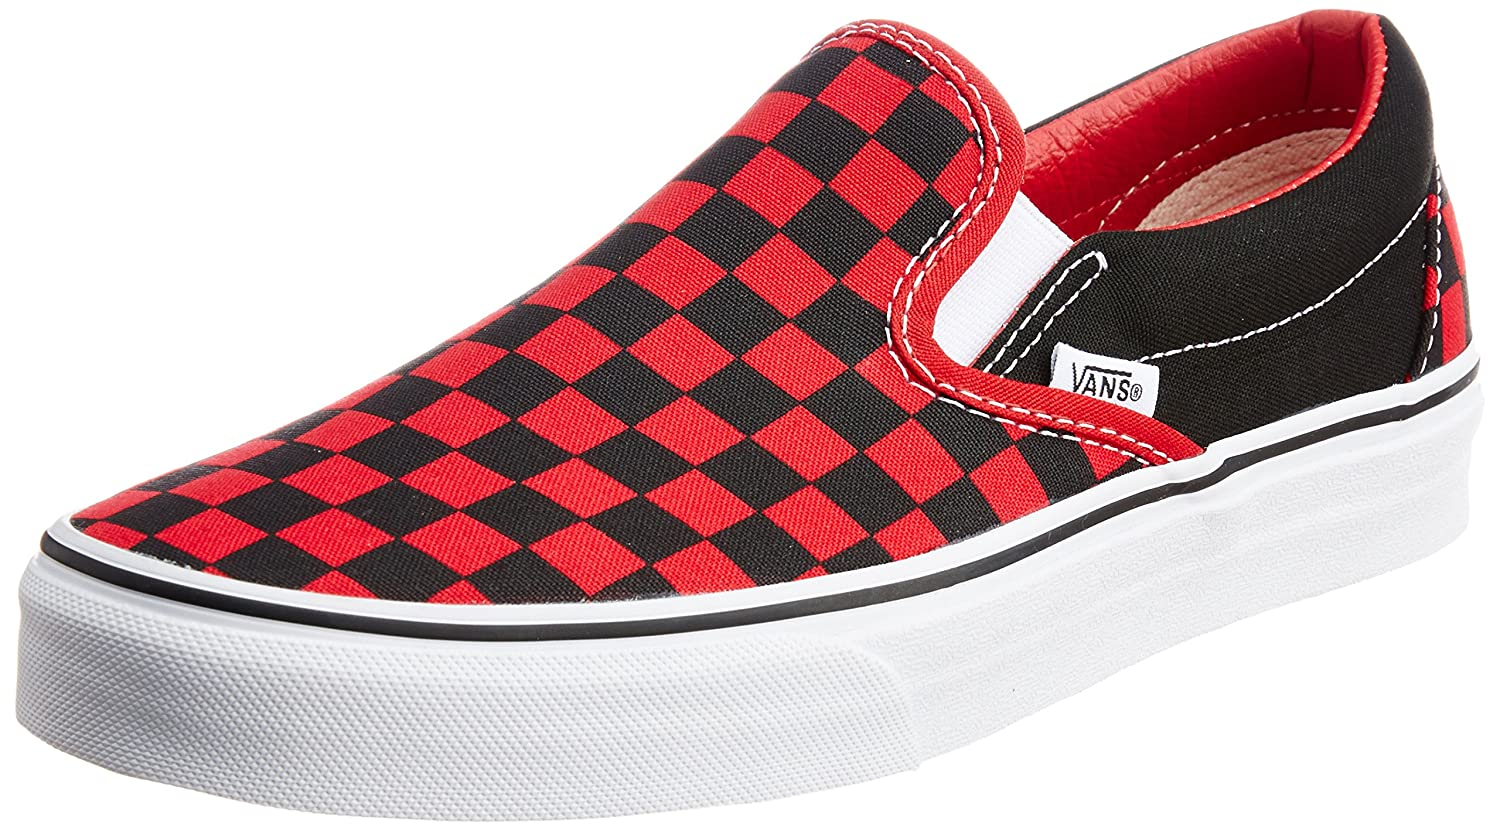 60cff72f80 Vans Men s Classic Slip-on Checkerboard Red and Black Canvas Boat Shoes - 8  UK  Buy Online at Low Prices in India - Amazon.in